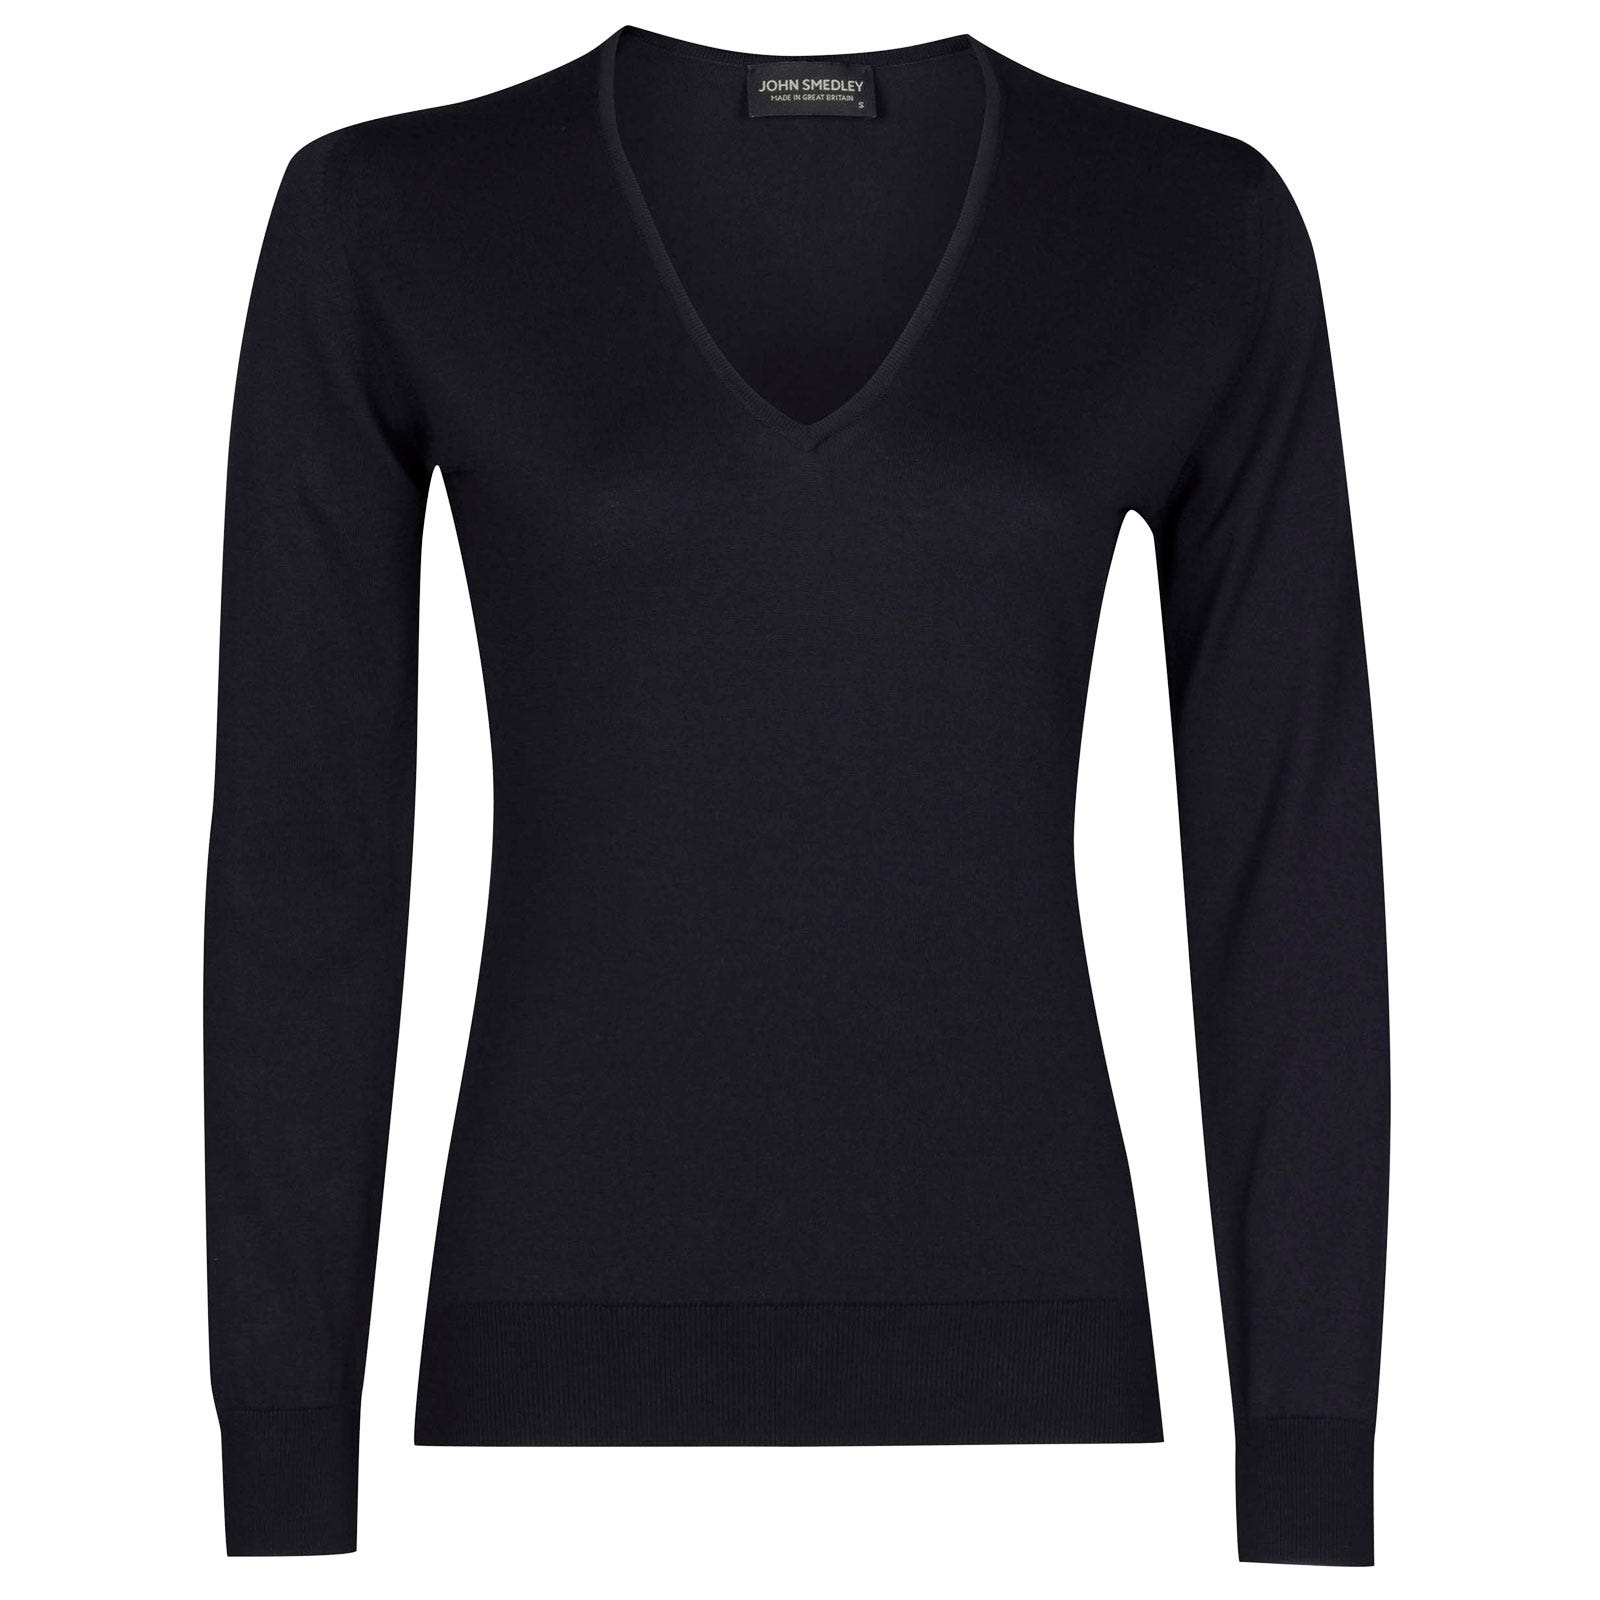 John Smedley putney Sea Island Cotton Sweater in Navy-S